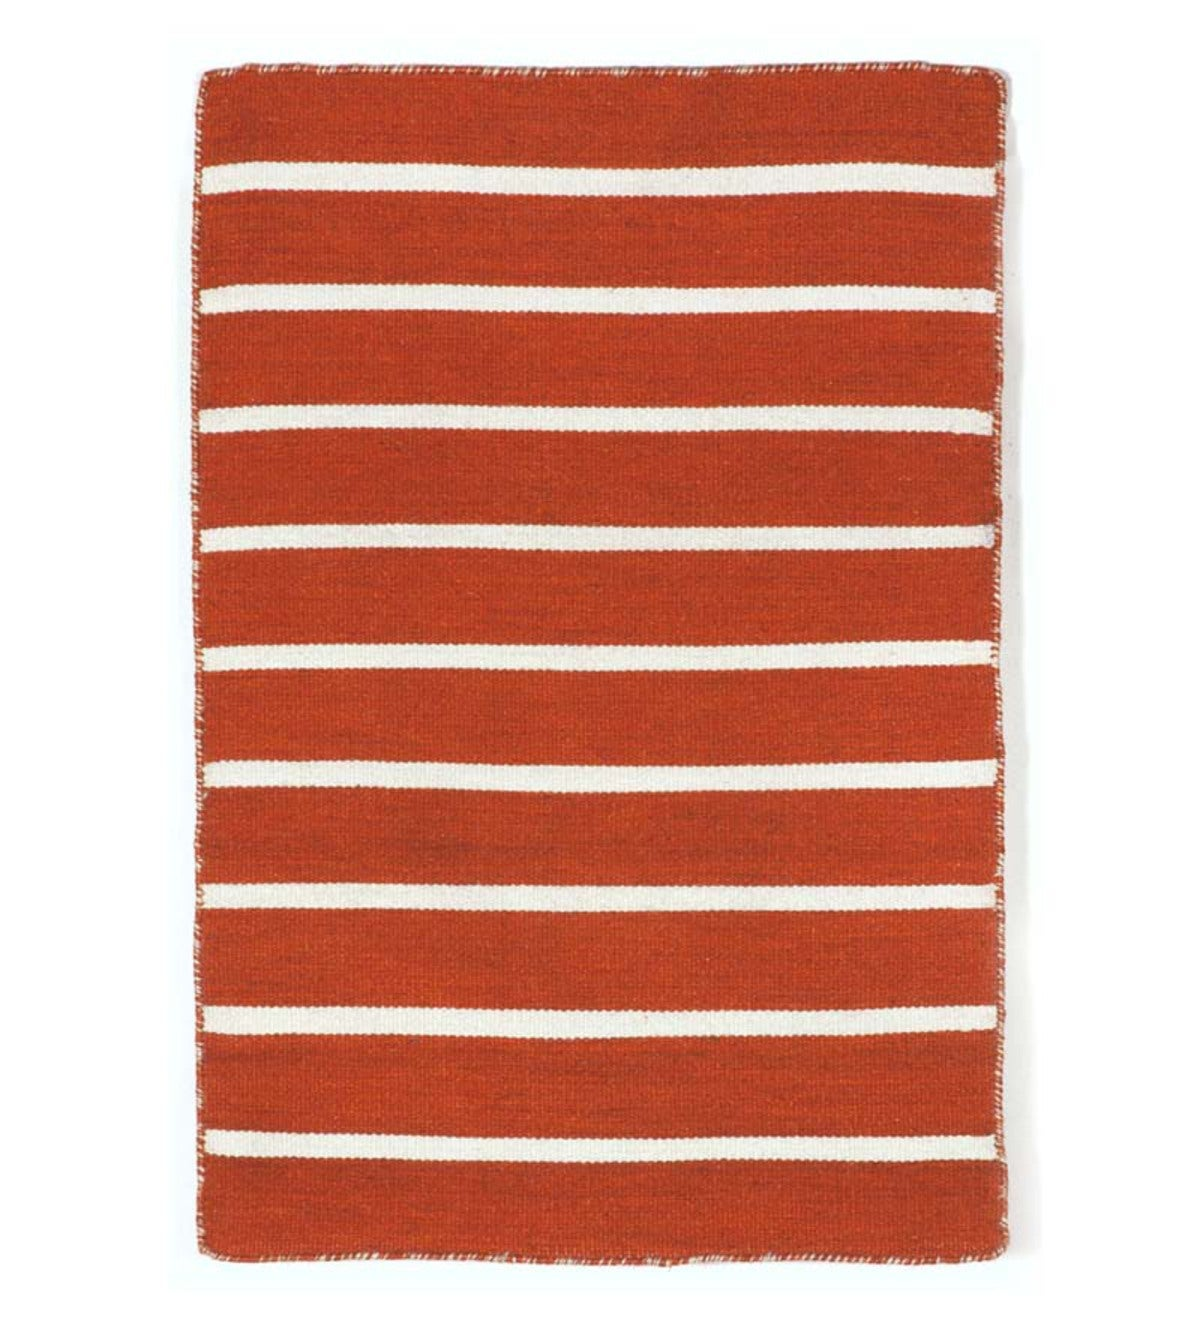 Sorrento Paprika Pinstripe Indoor/Outdoor Rug - Paprika